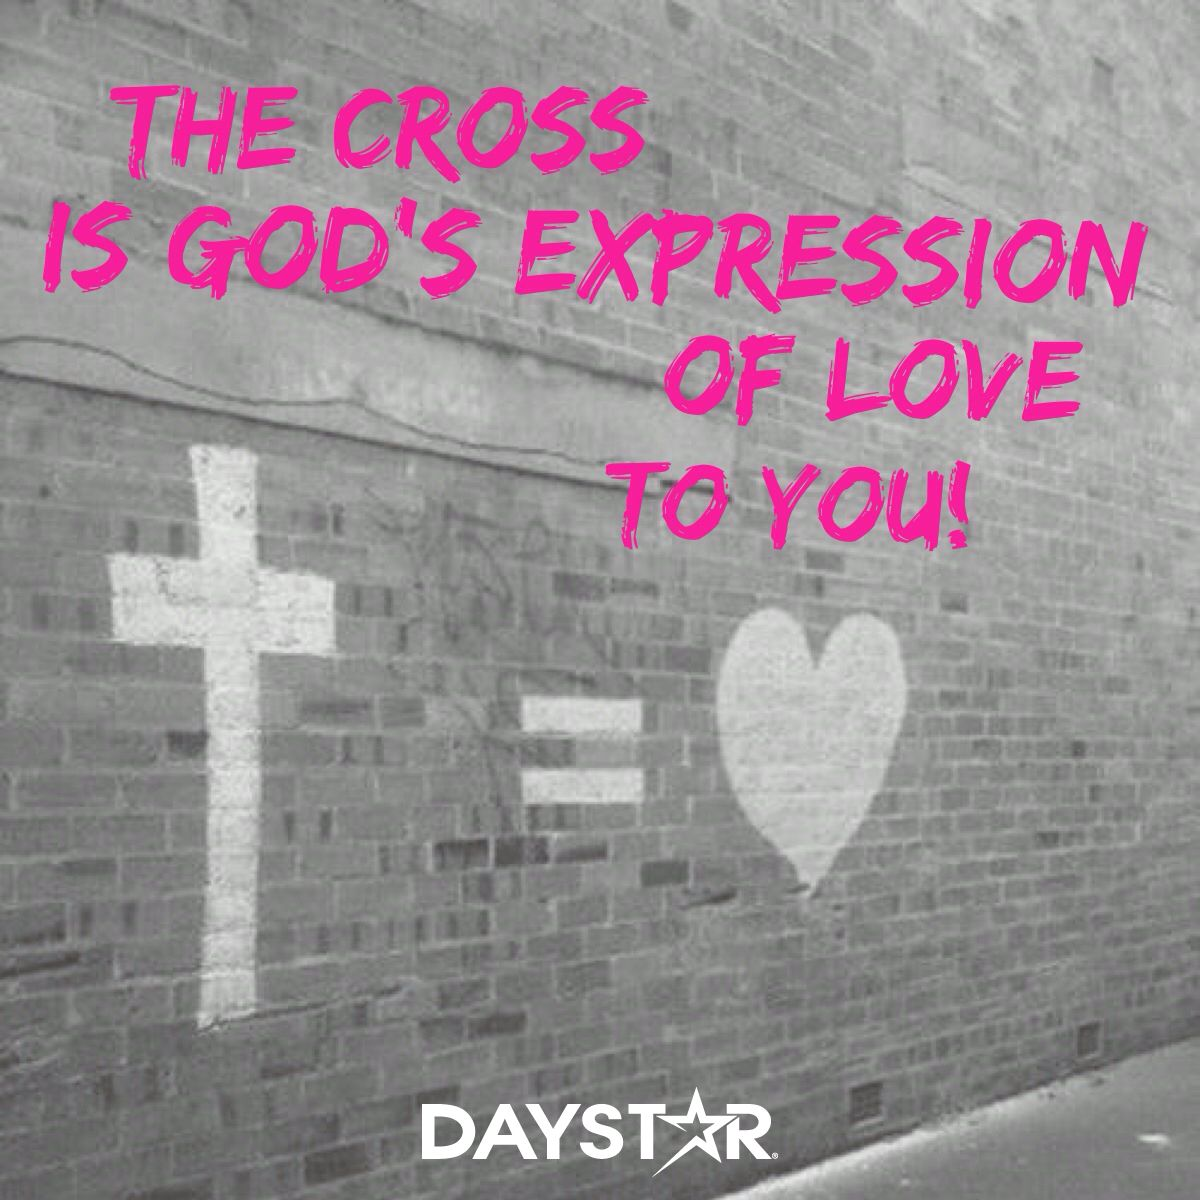 The Cross is God's expression of love to you! [Daystar.com ...